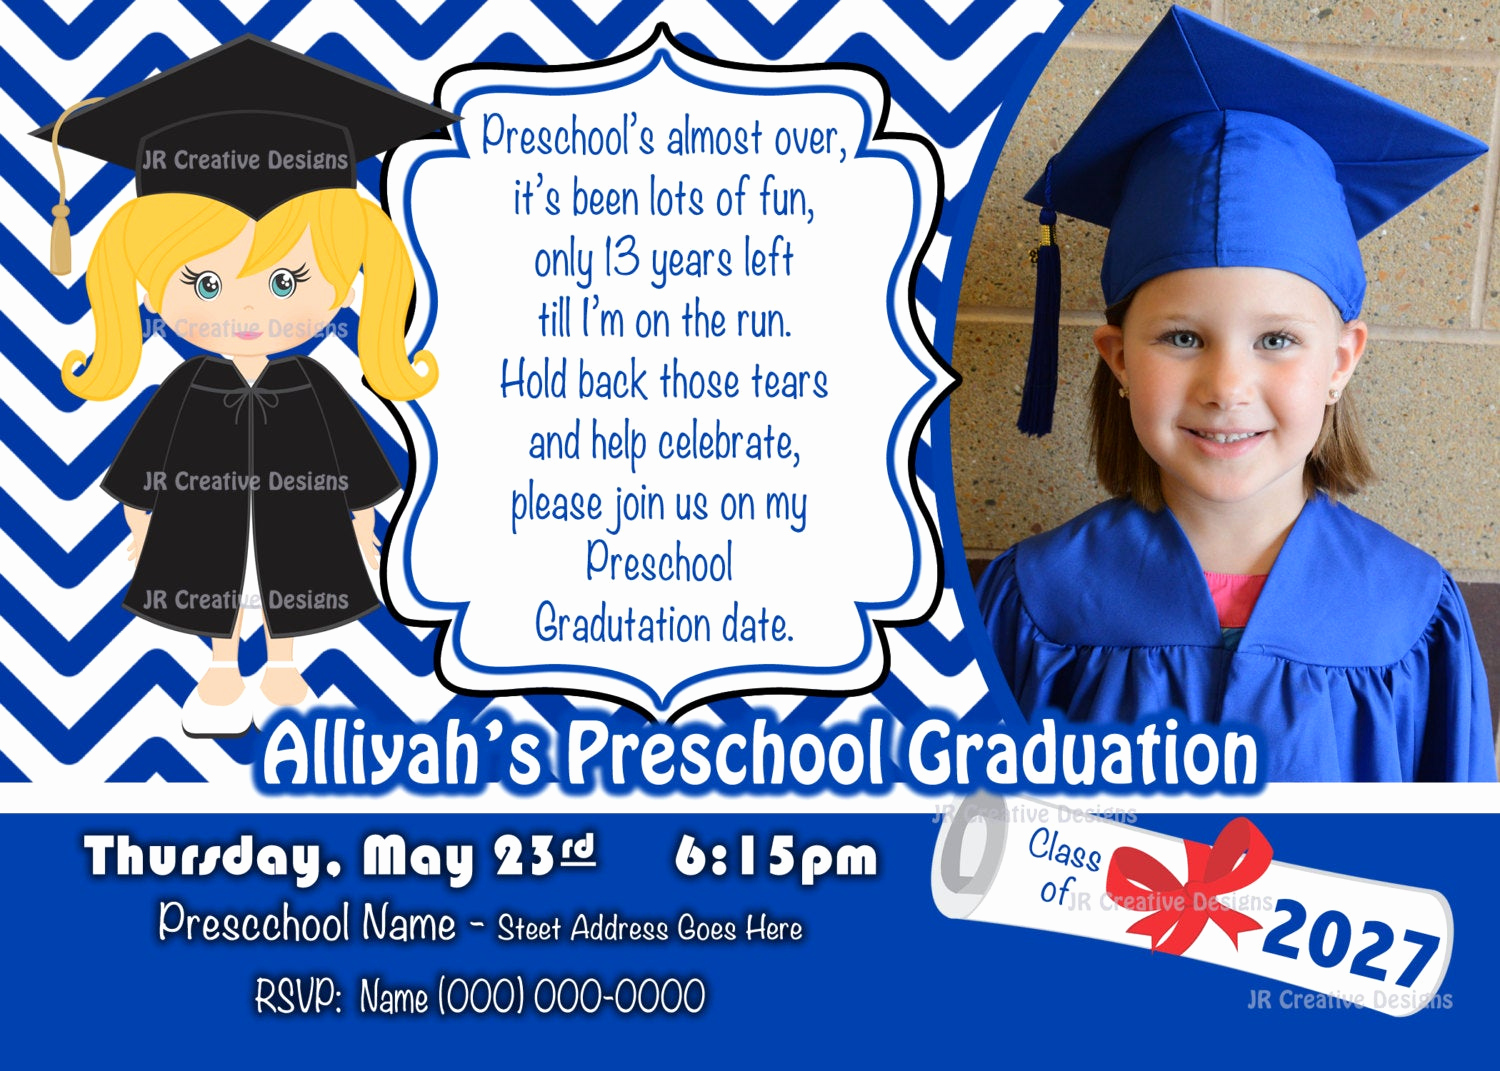 Preschool Graduation Invitation Ideas New Preschool Graduation Invitation Kindergarten Graduation